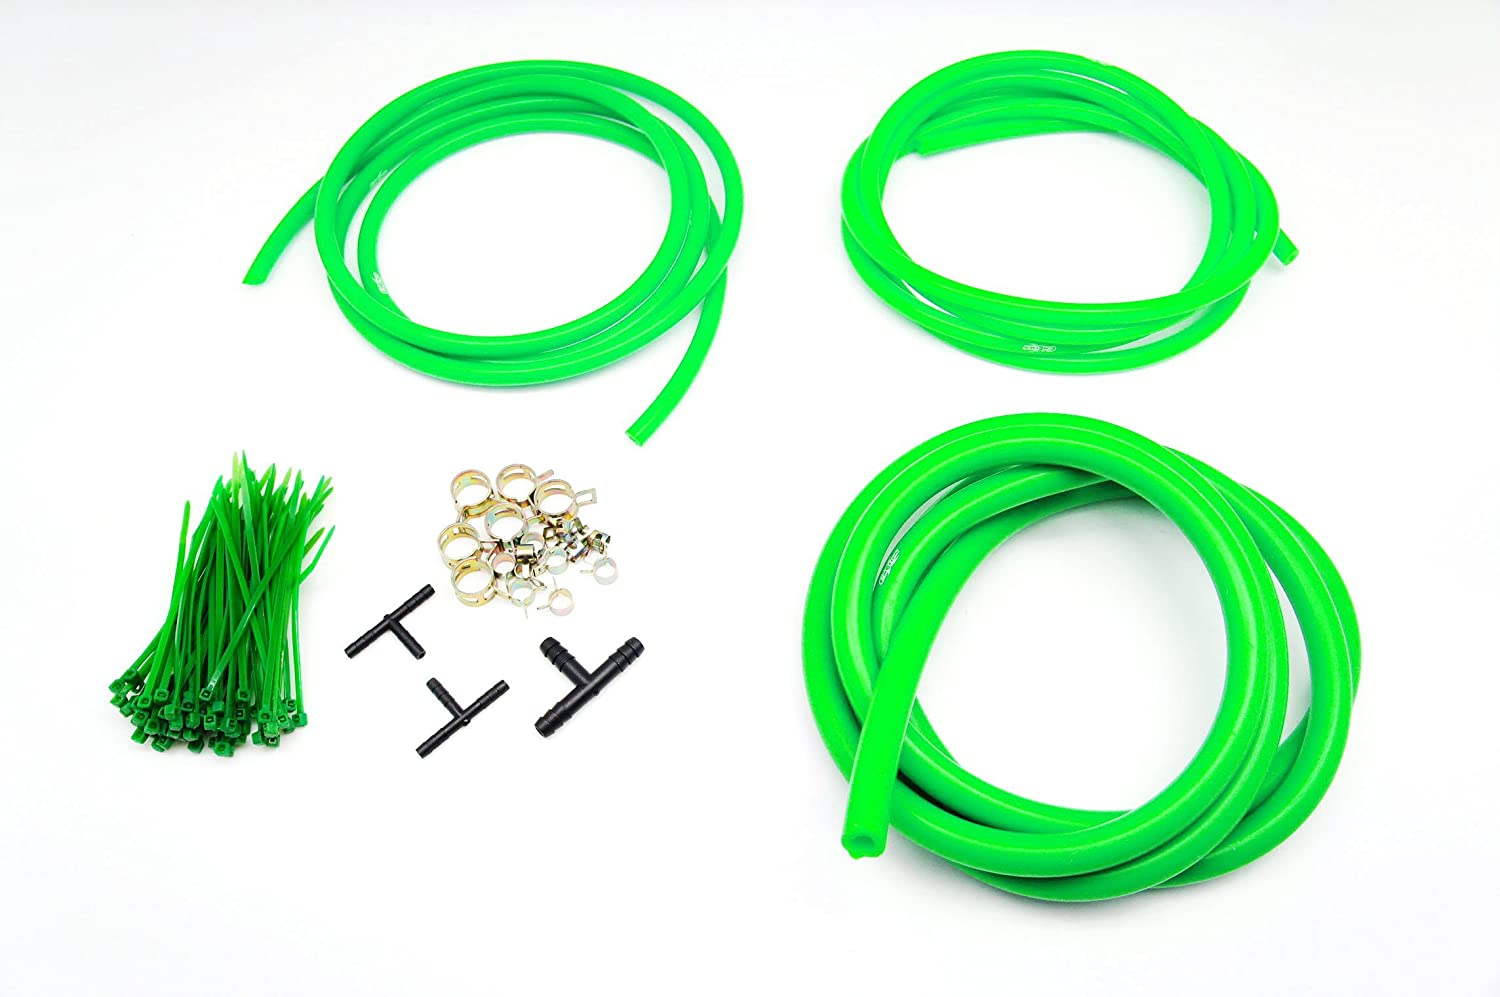 Autobahn88 Engine Room Silicone Vacuum Hose Dress Up DIY Kit, Fit All Models of BMW (Green)